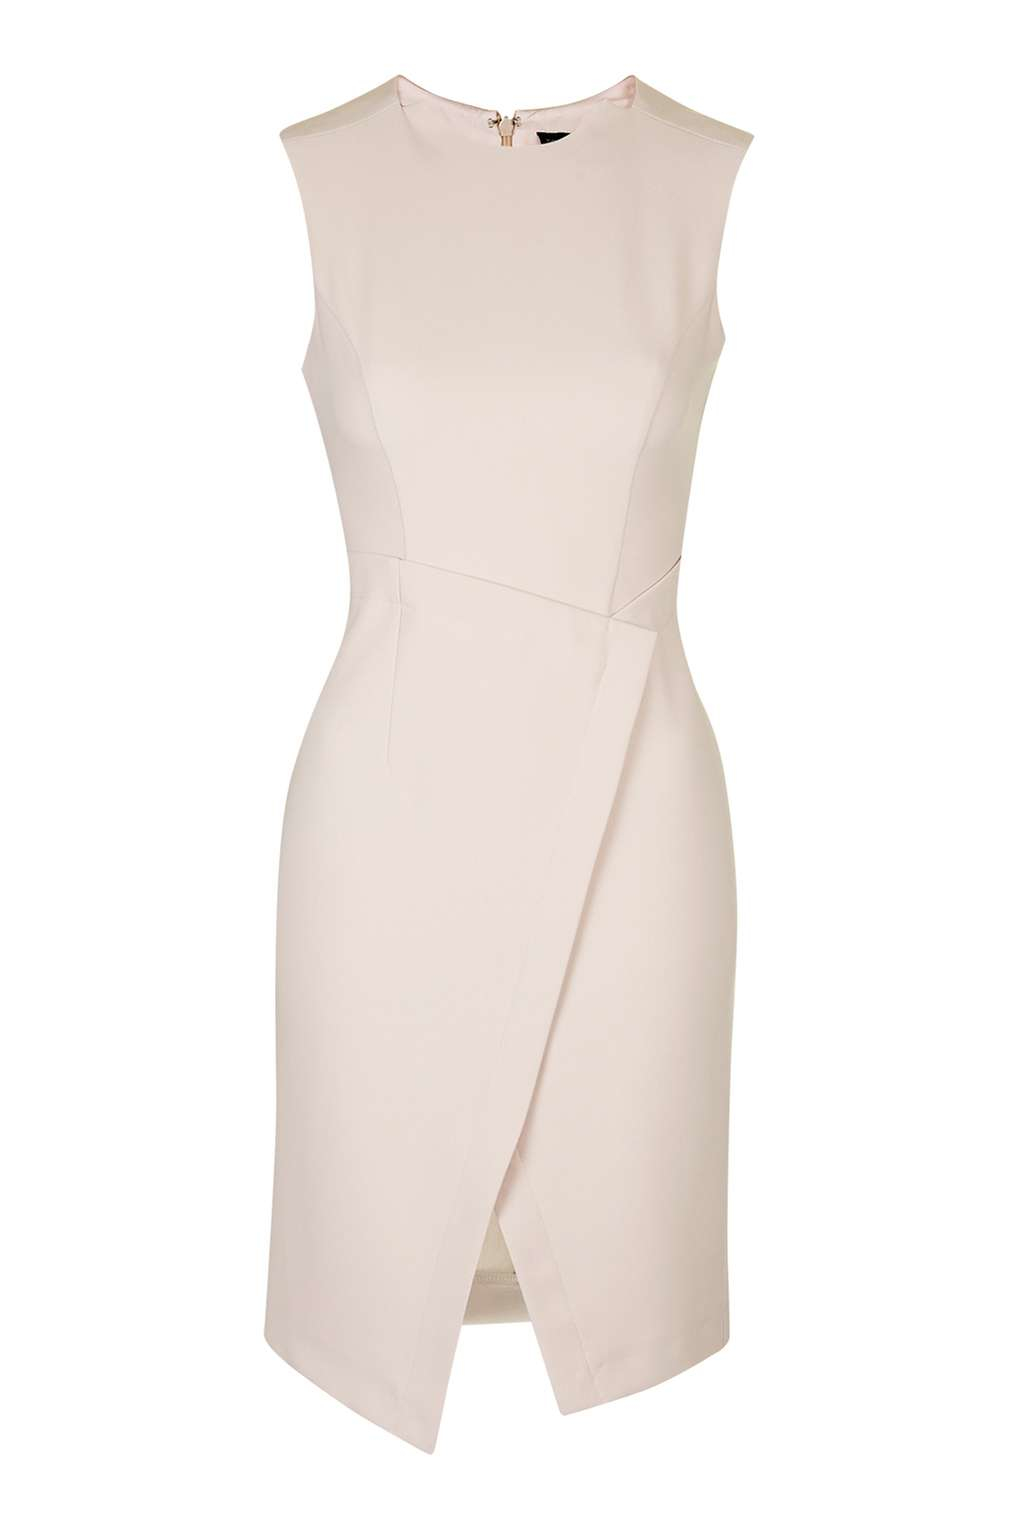 Lyst Topshop Structured Wrap Dress In Pink